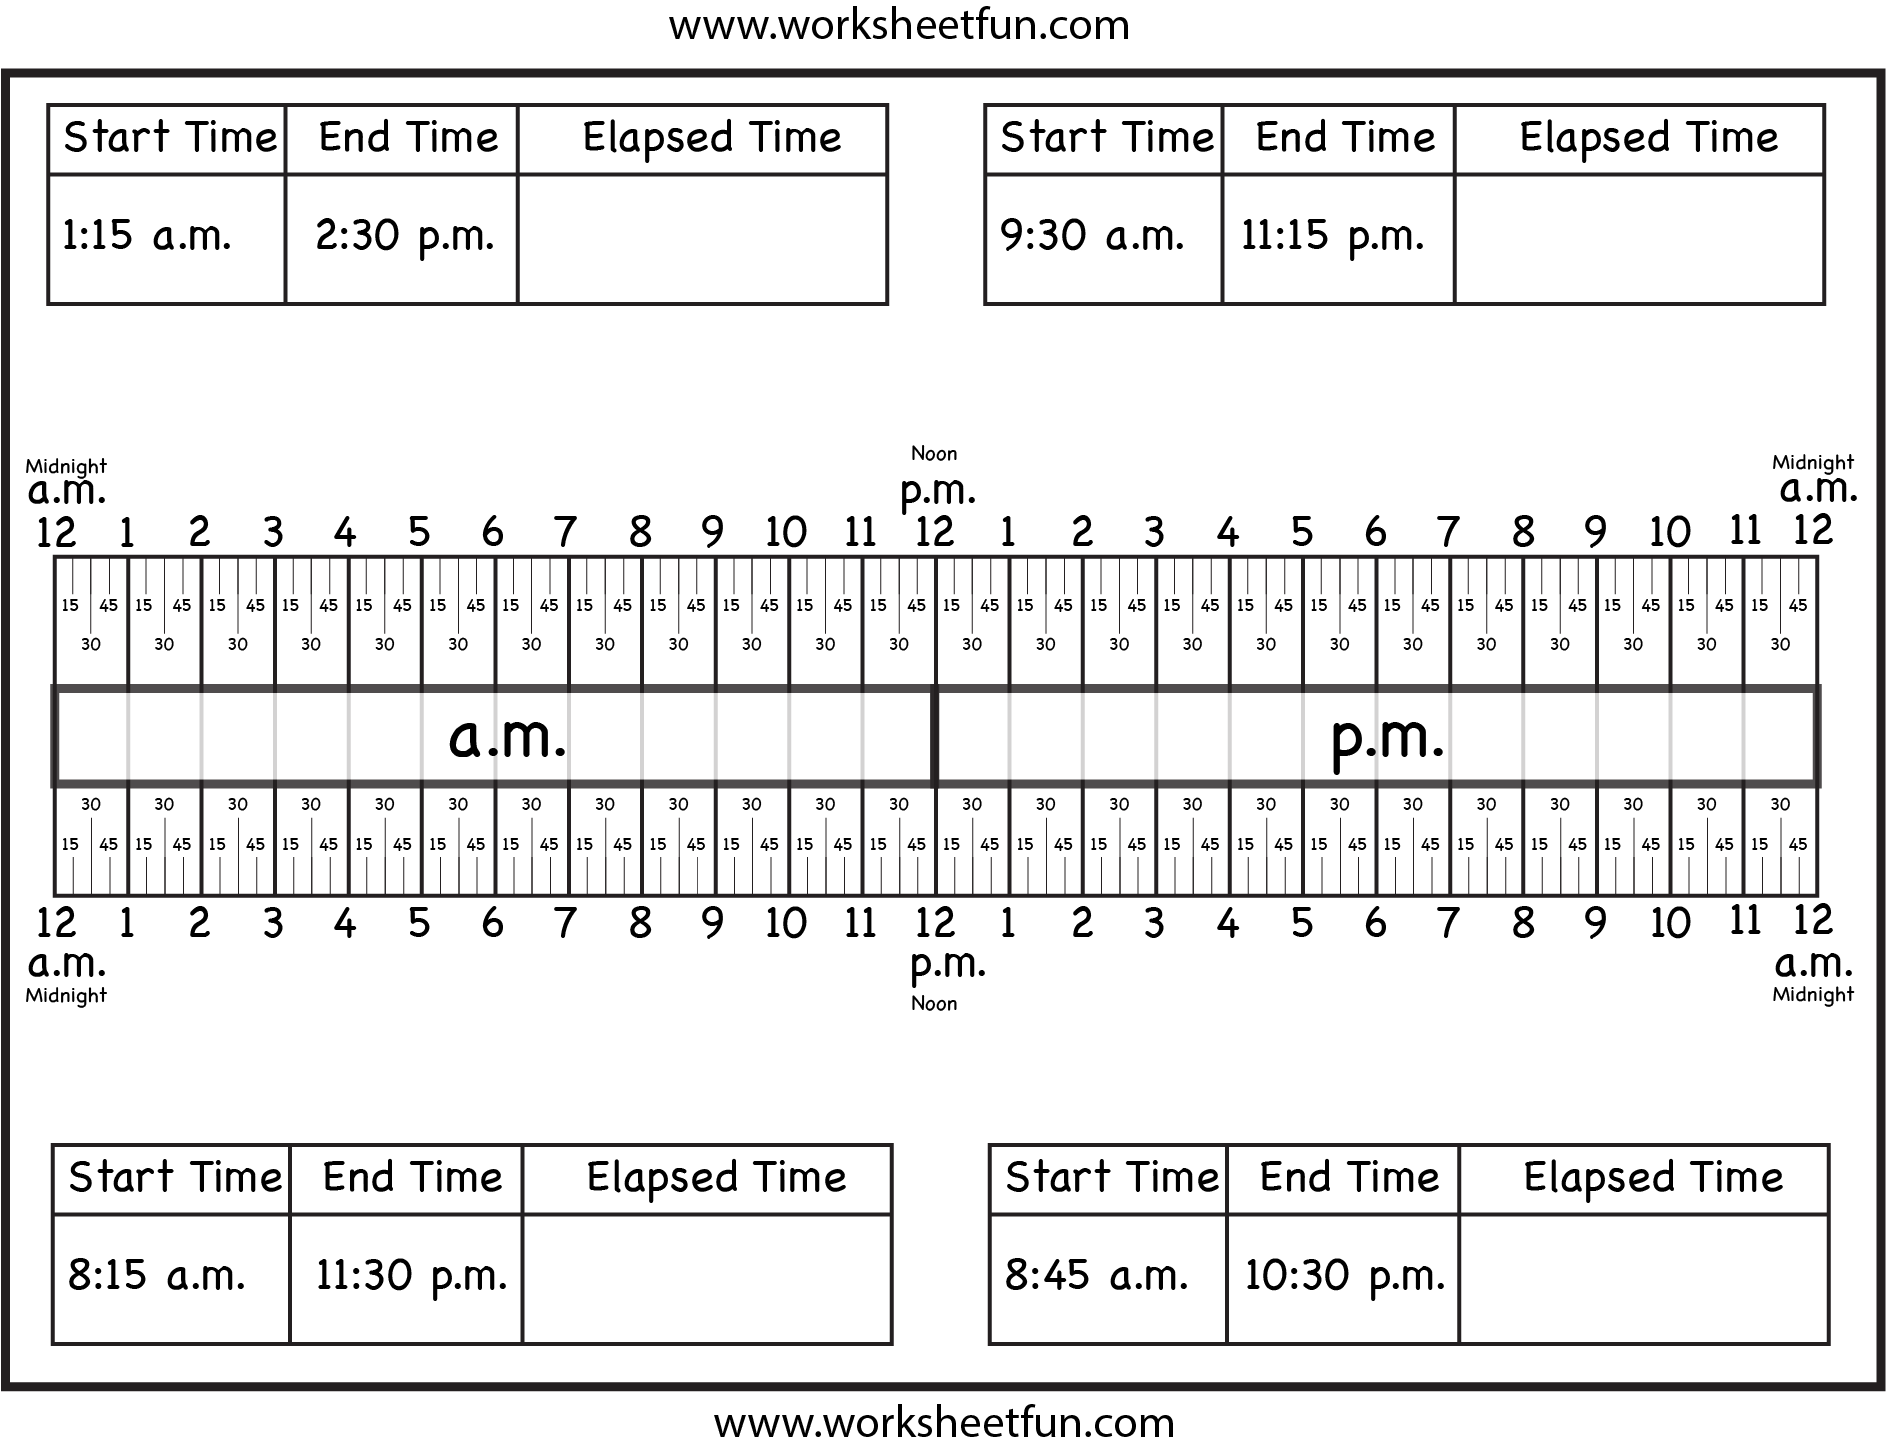 Calculate Elapsed Time Using Elapsed Time Ruler Quarter Hours 15 30 45 60